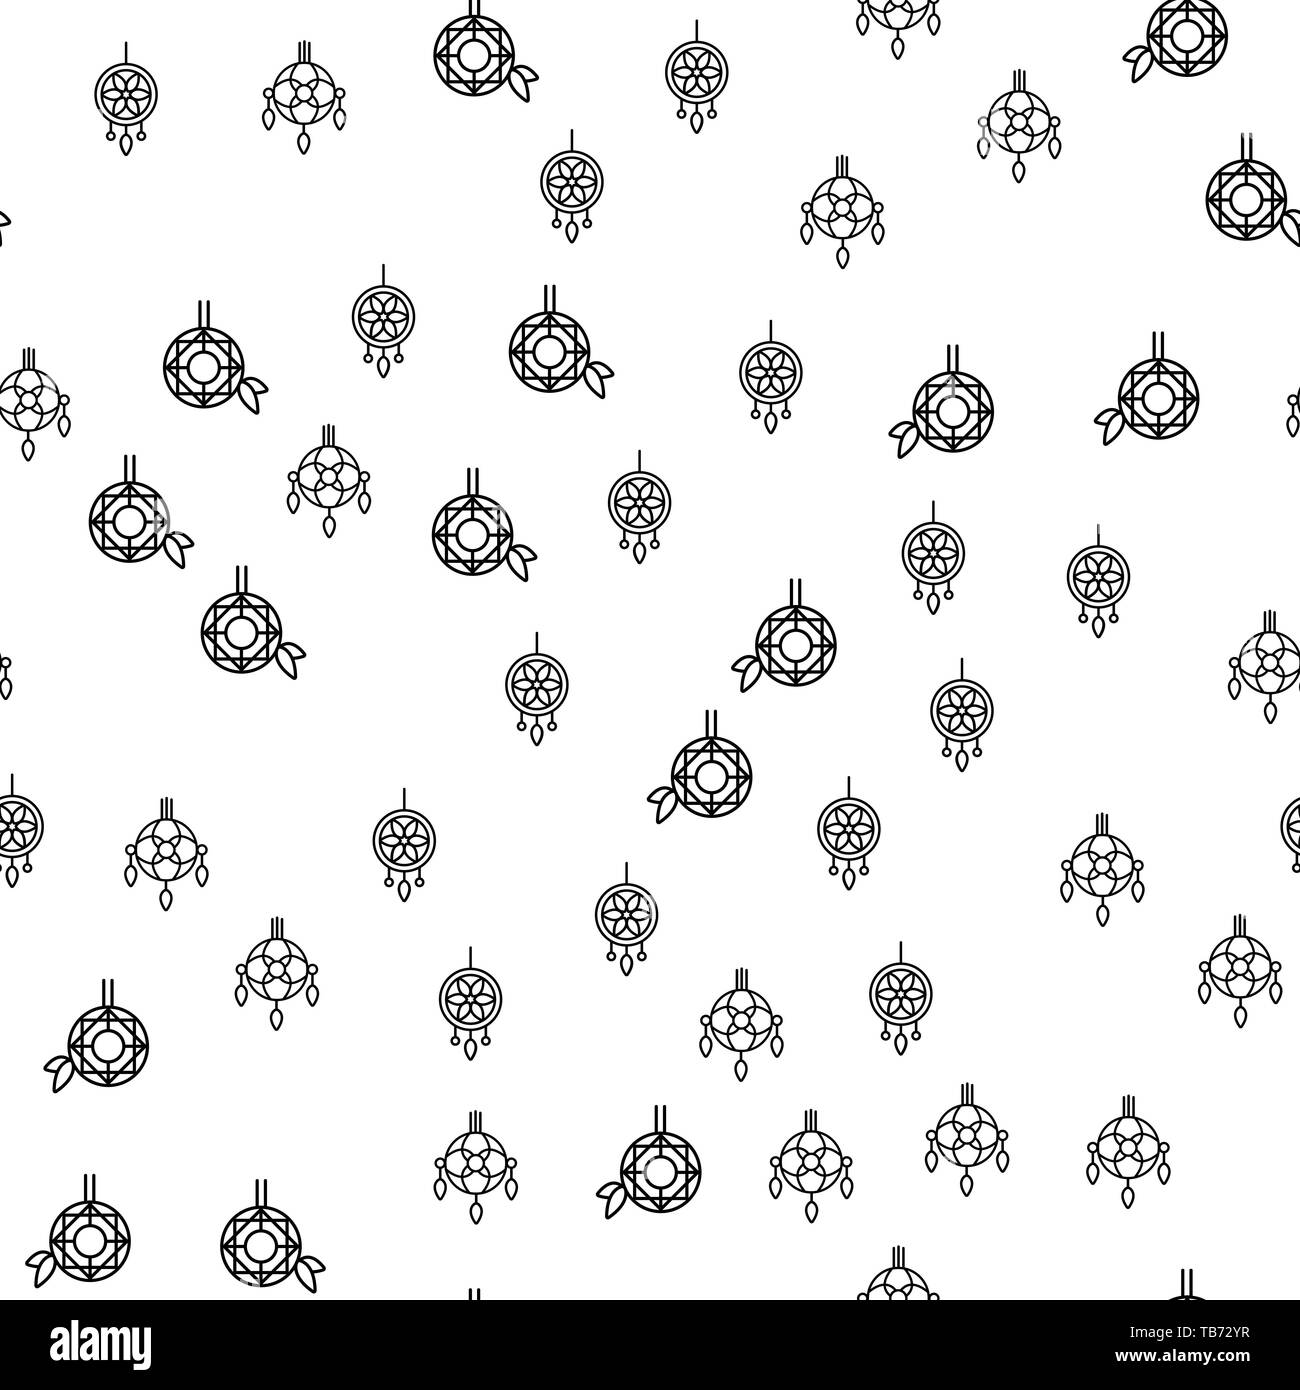 Various Jewelry Ornaments Seamless Pattern Vector. Different Luxury Jewelry Pendant Or Earrings Monochrome Texture Icons. Assortment Of Coulomb Bijout - Stock Image